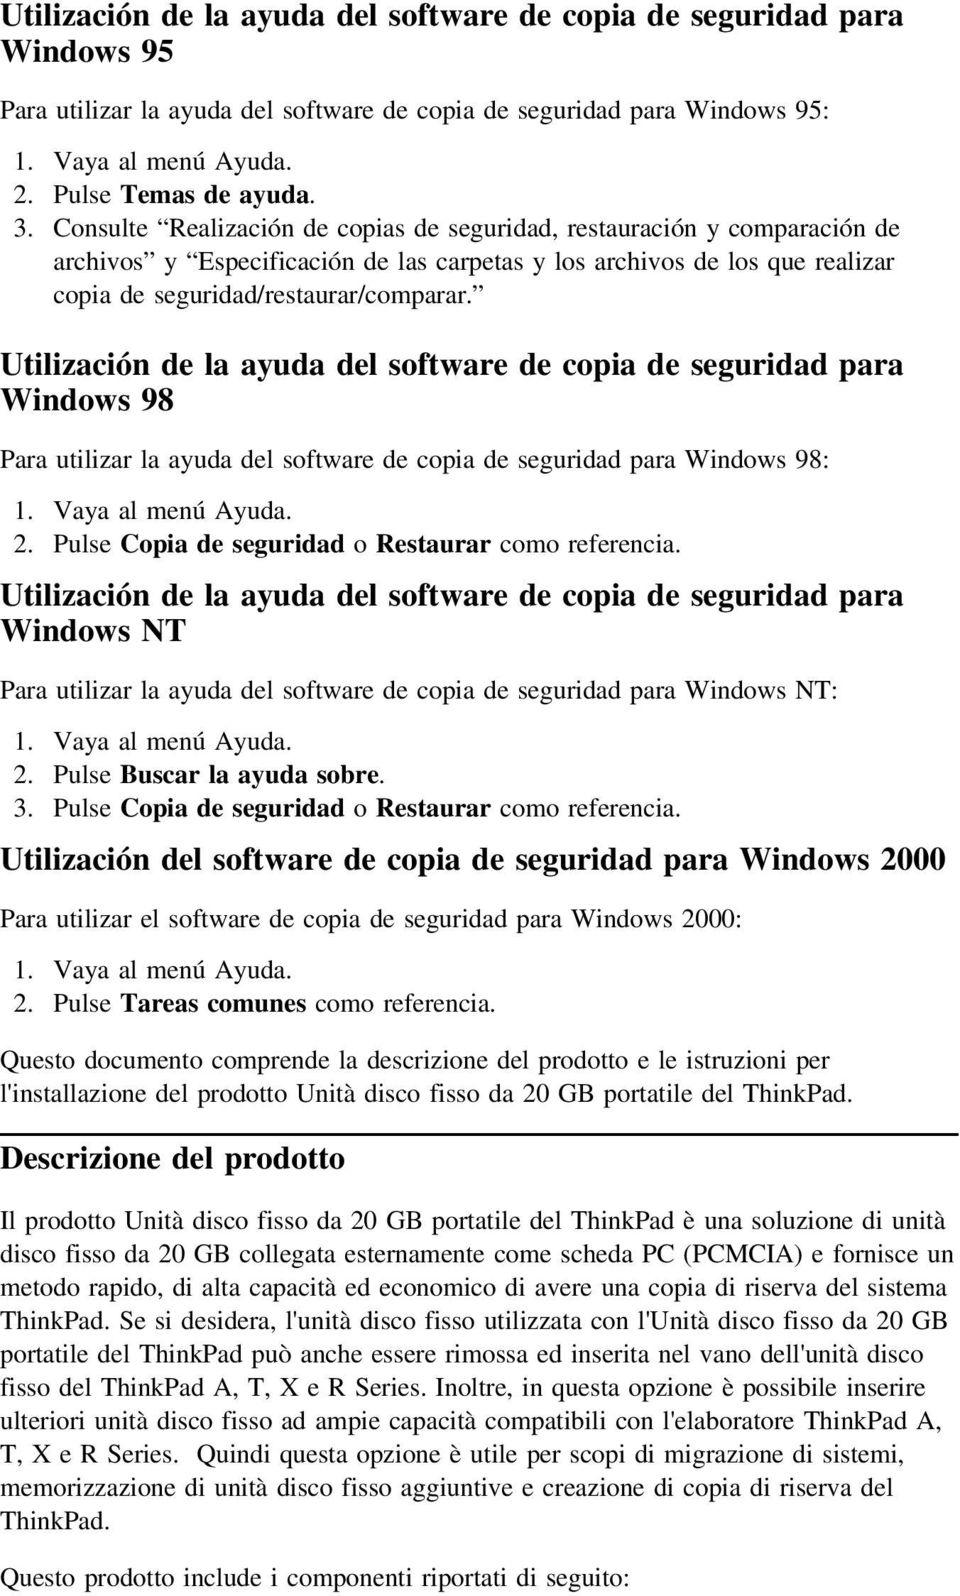 Utilización de la ayuda del software de copia de seguridad para Windows 98 Para utilizar la ayuda del software de copia de seguridad para Windows 98: 1. Vaya al menú Ayuda. 2.